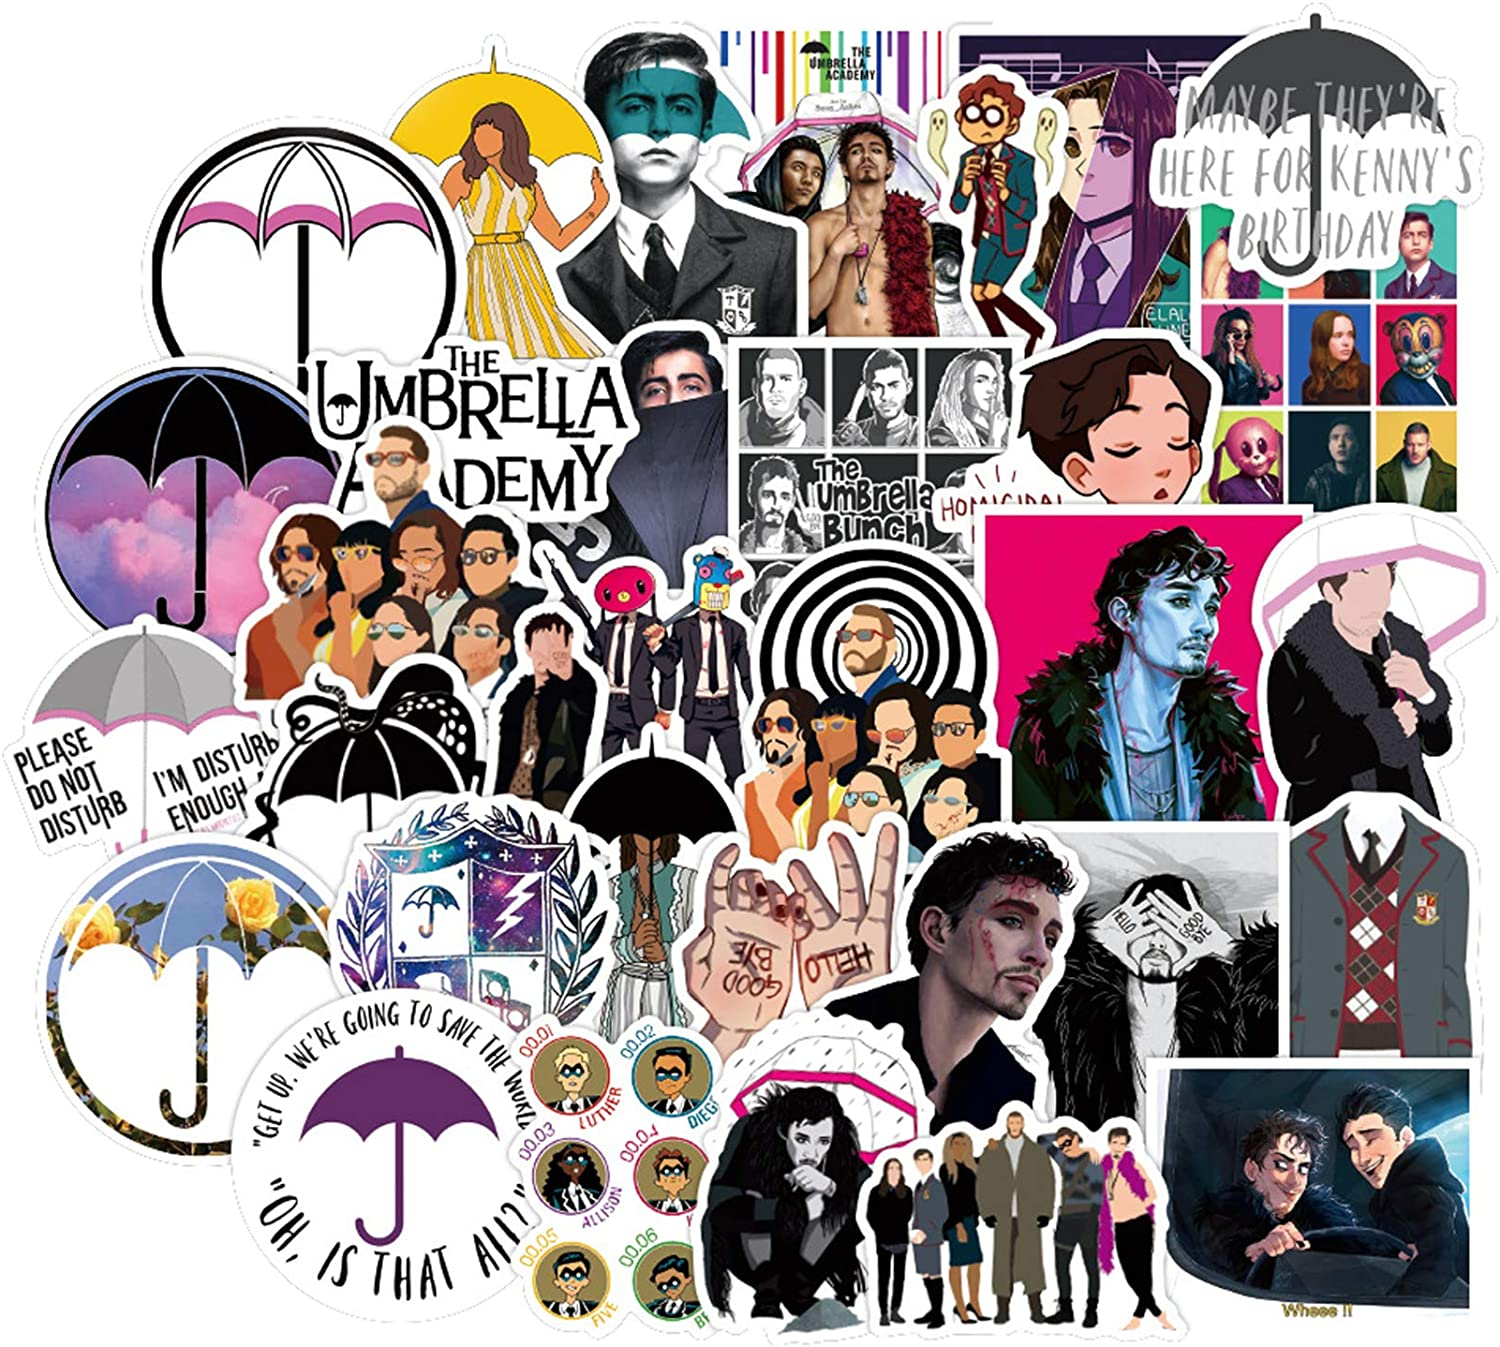 50Pcs The Umbrella Academy Stickers for Water Bottle Cup Laptop Guitar Car Motorcycle Bike Skateboard Luggage Box Vinyl Waterproof Graffiti Patches JKT